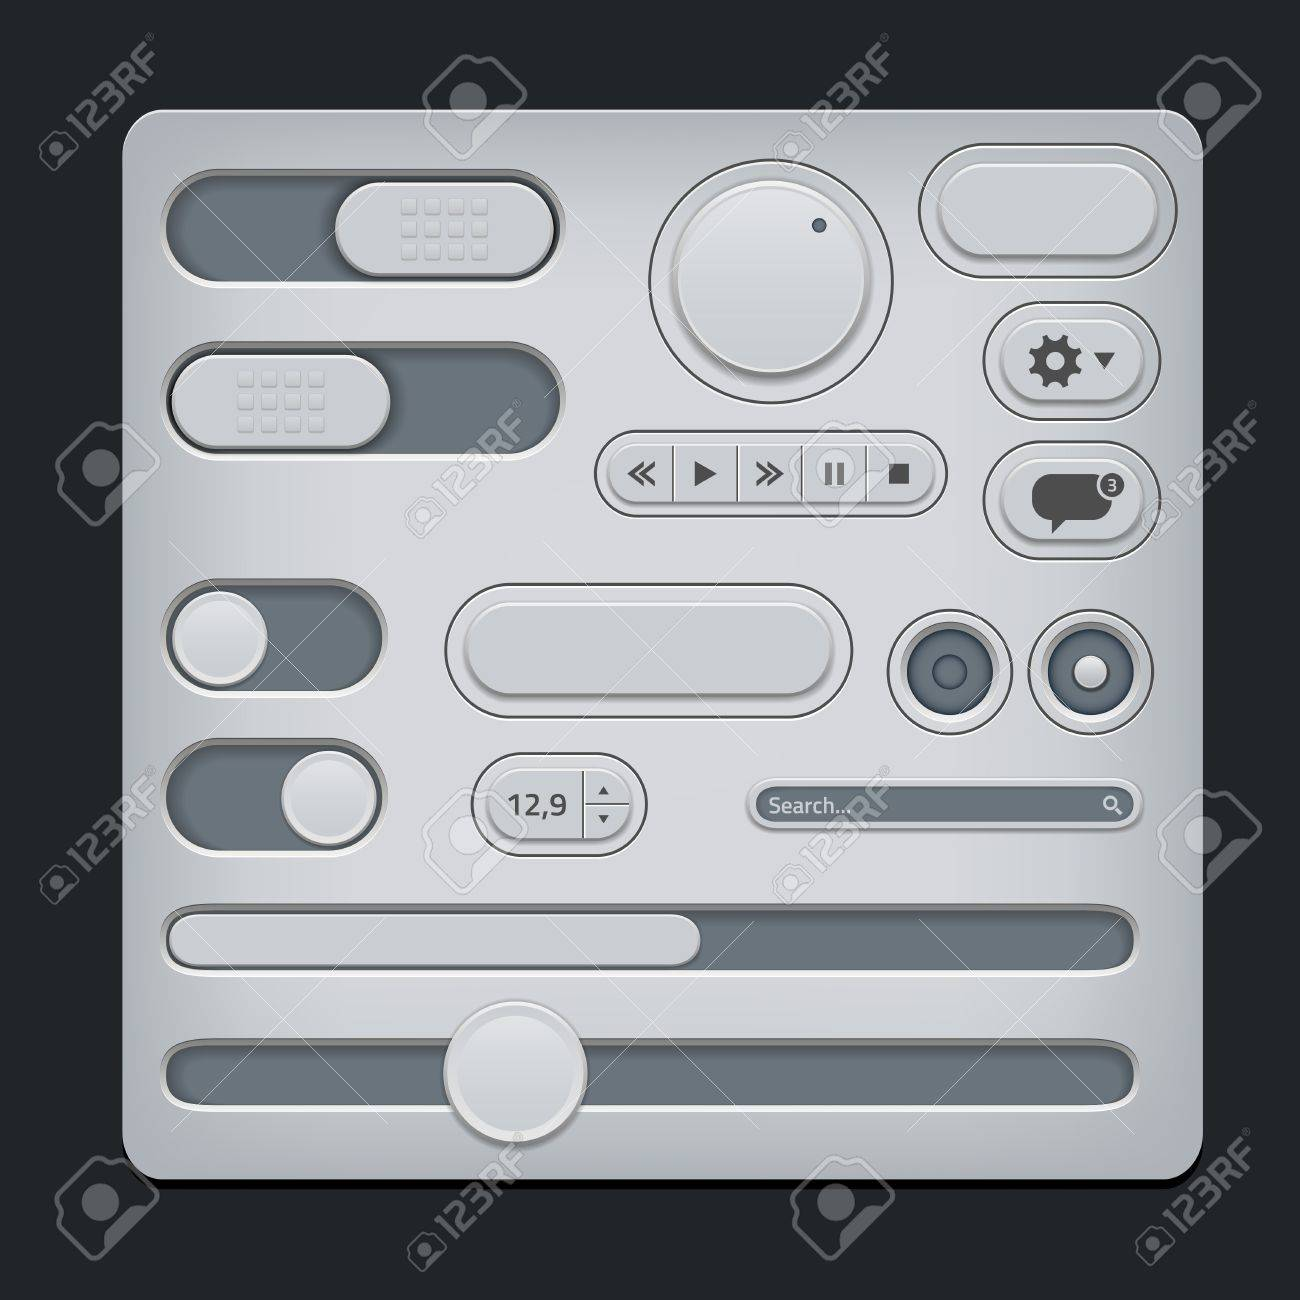 Set of gray ui web elements - sliders, switch, buttons etc Stock Vector - 20041751